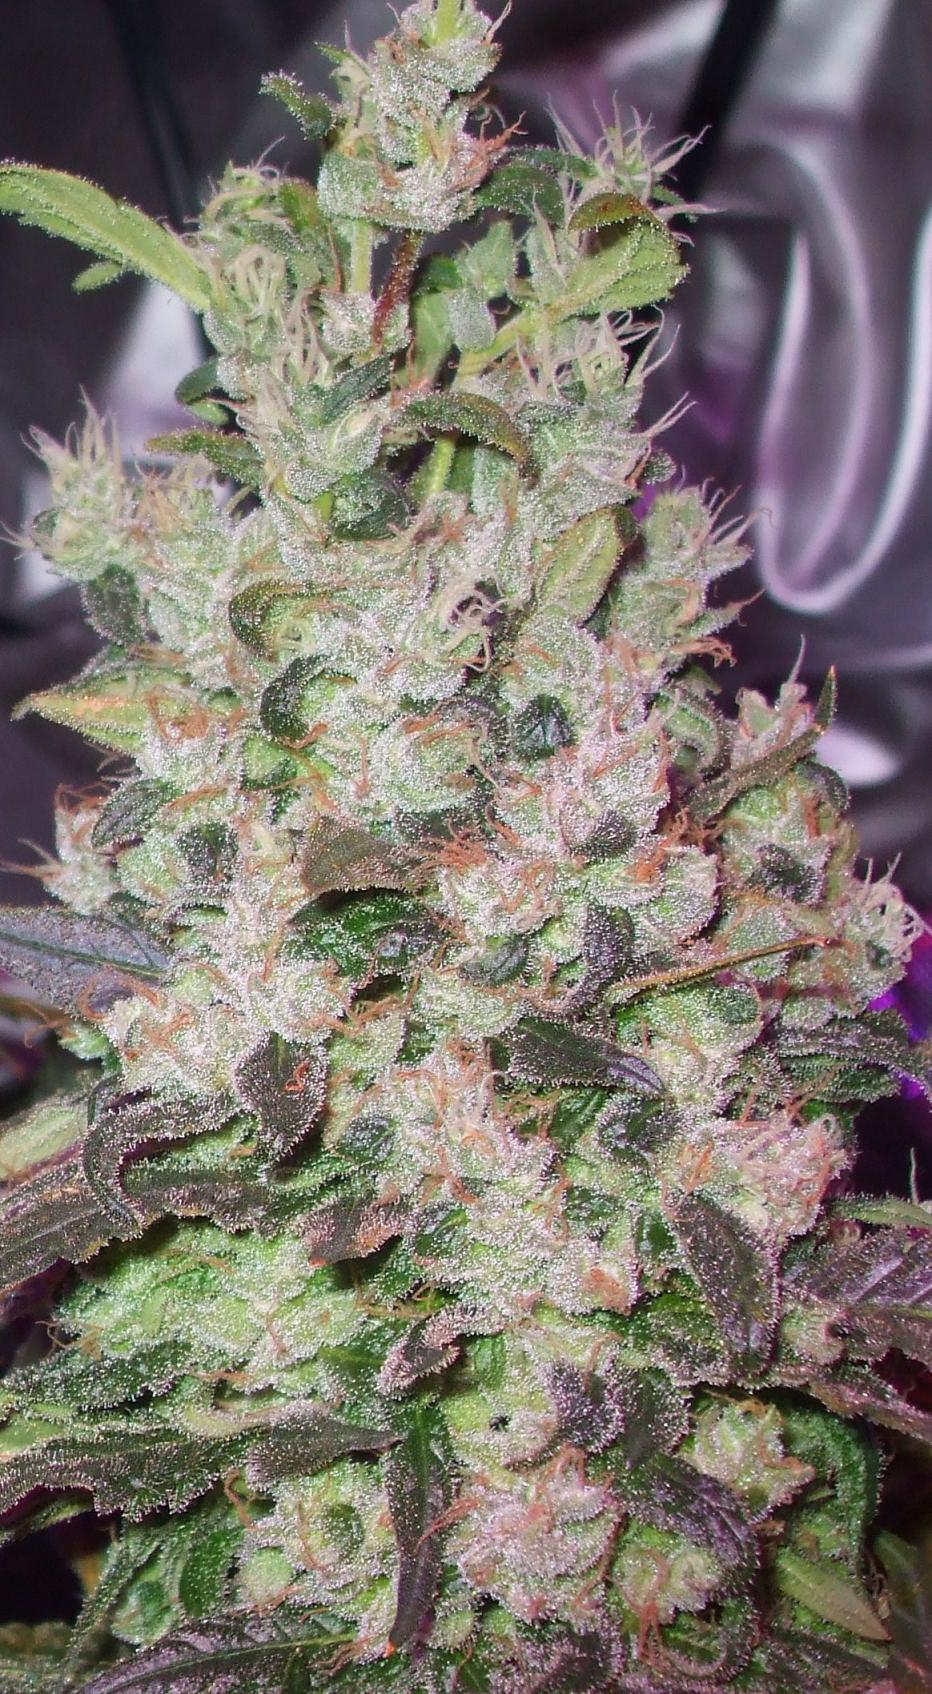 frosty nuggets